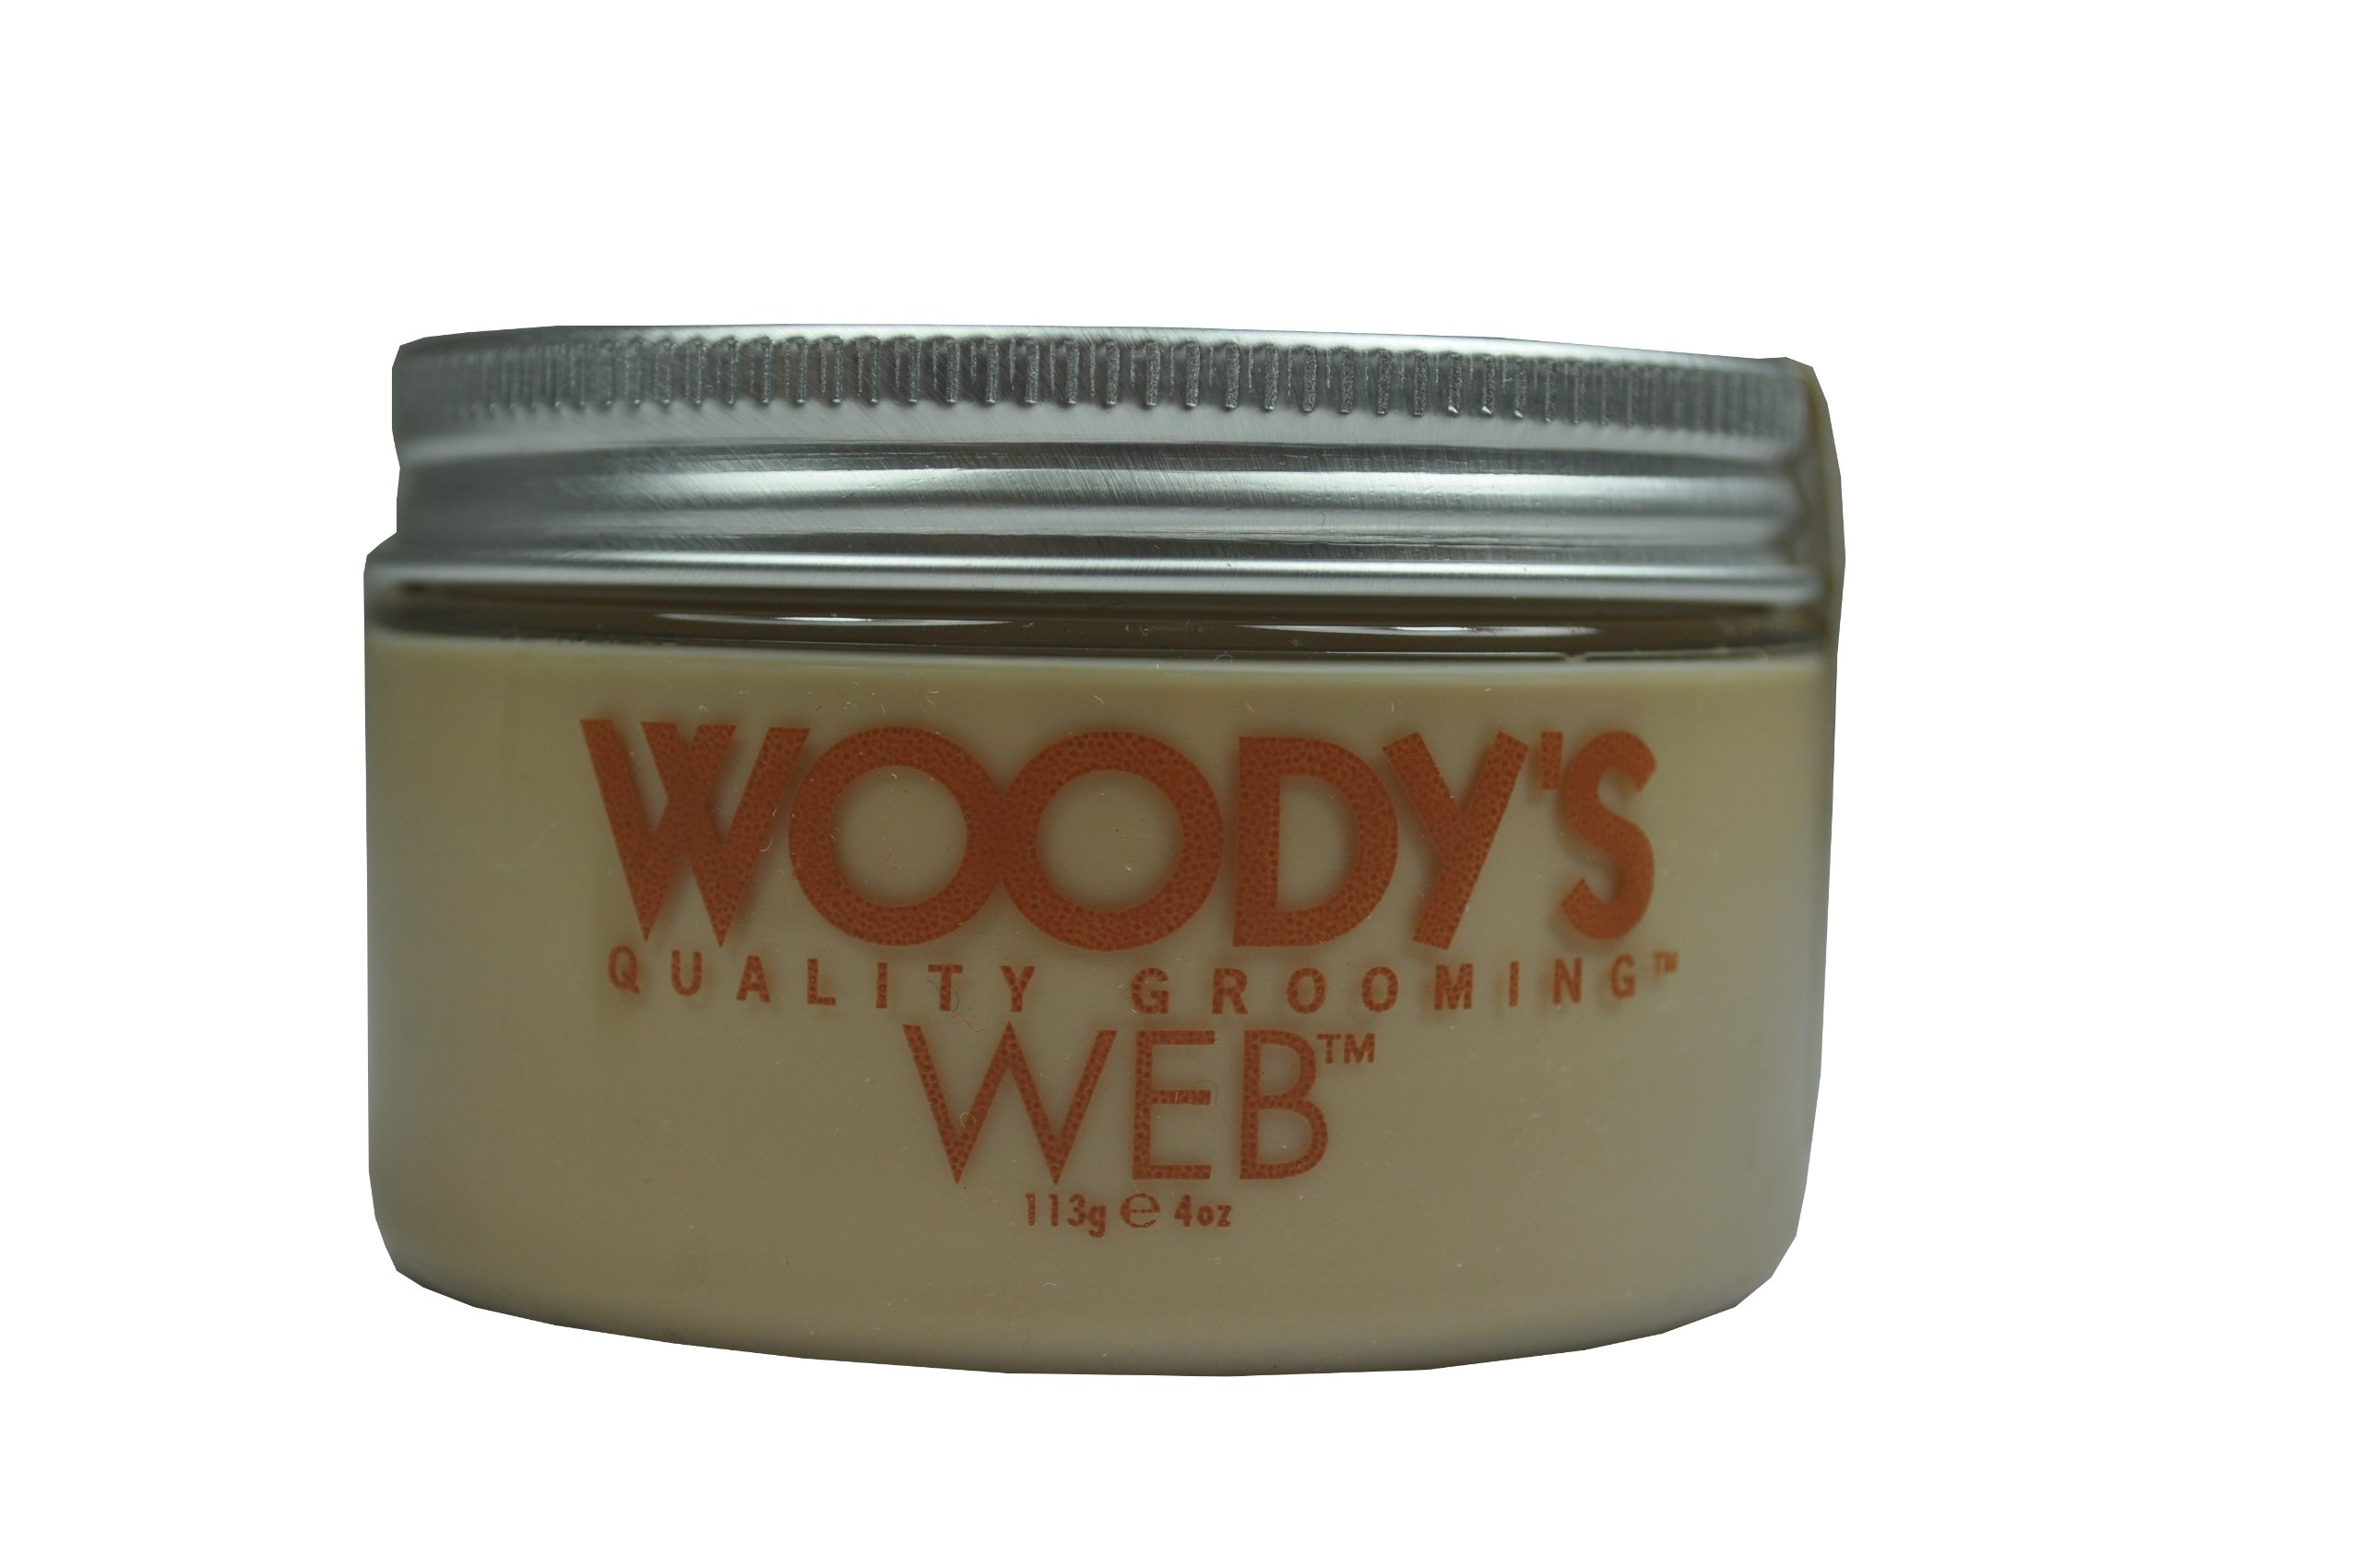 Woody's Quality Grooming Web 3.4 OZ